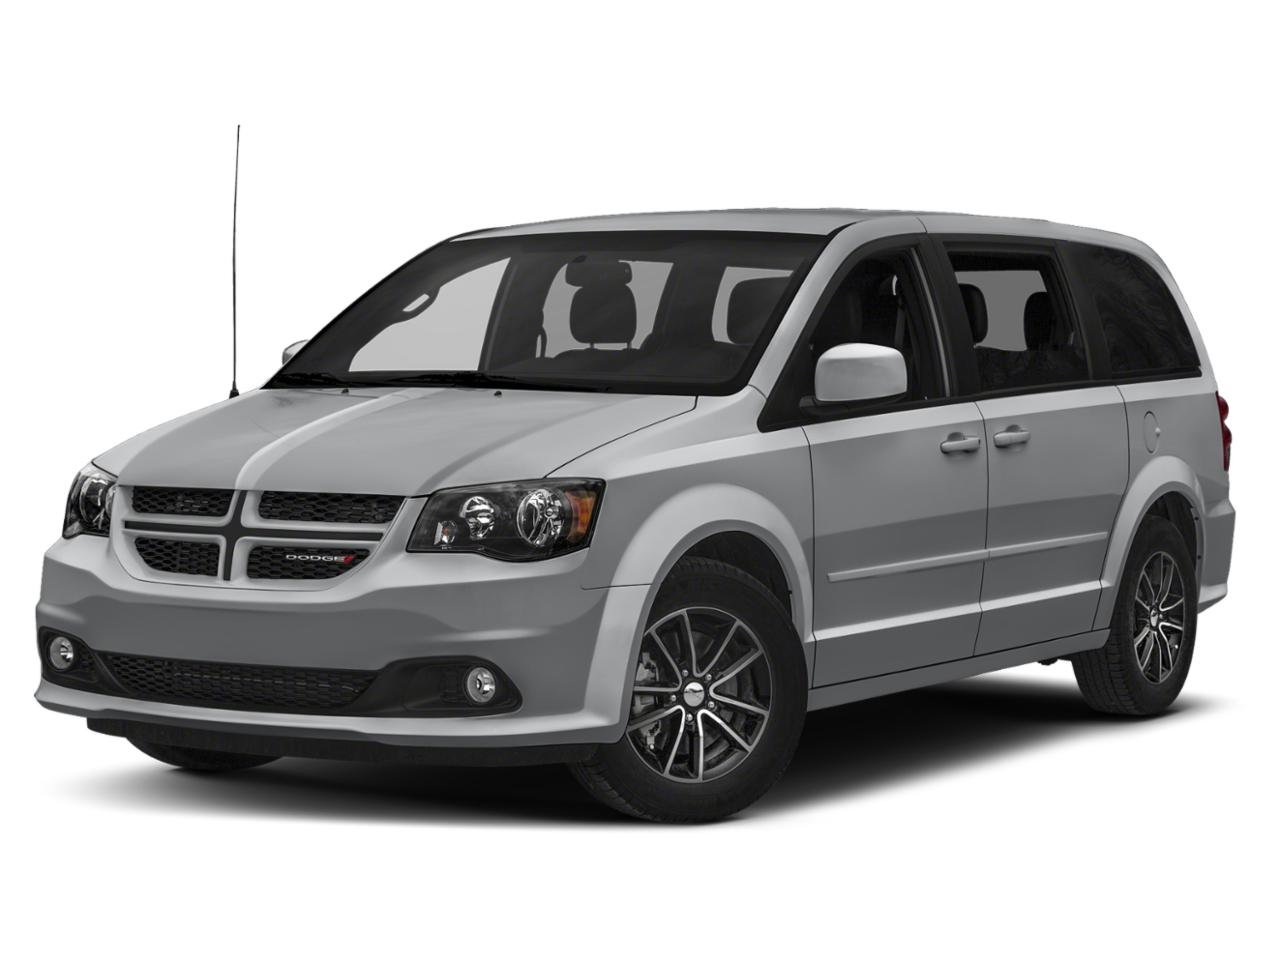 2019 Dodge Grand Caravan Vehicle Photo in Saginaw, MI 48609